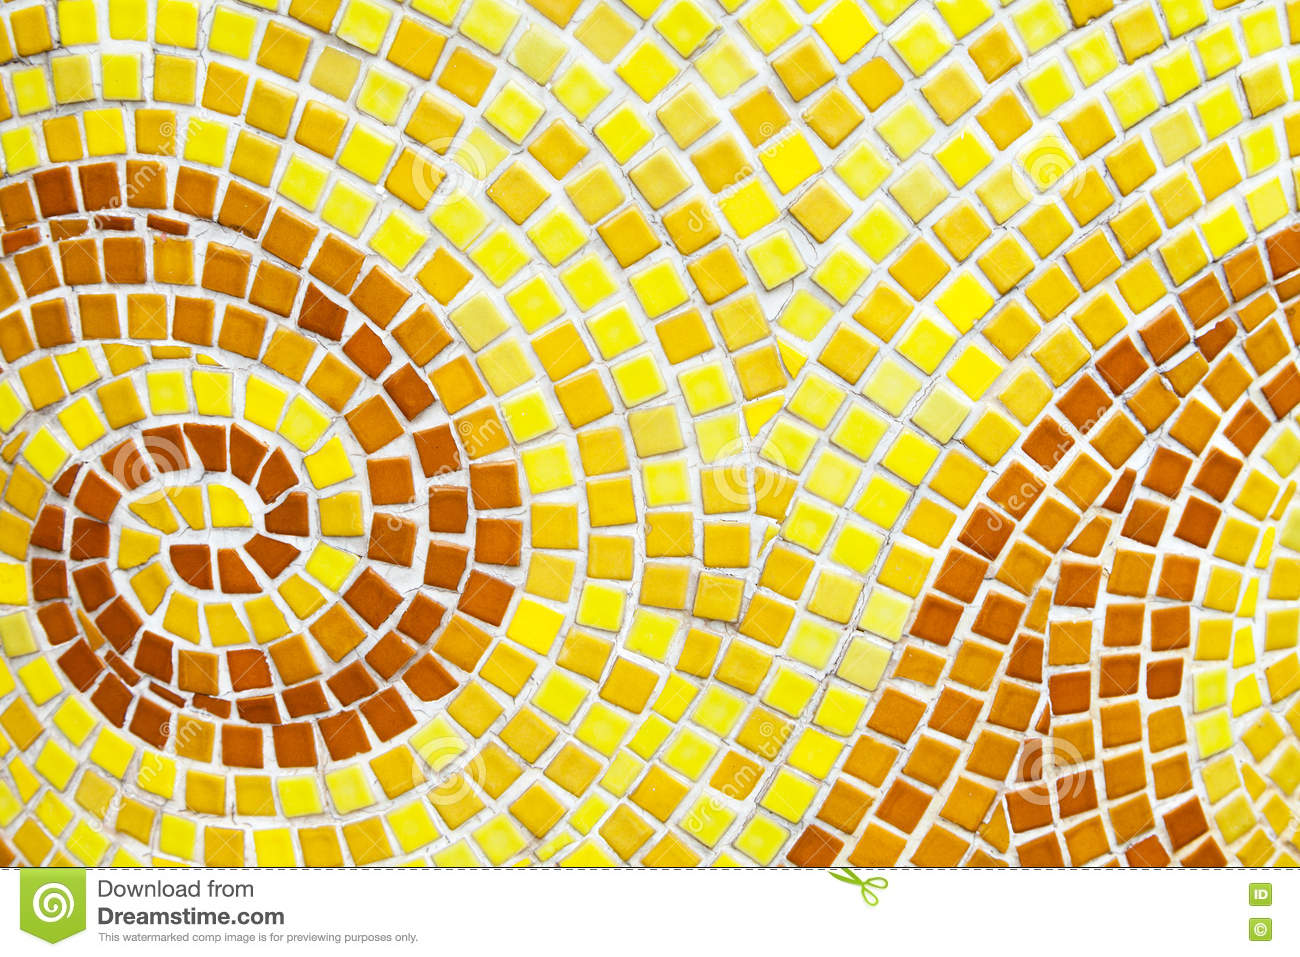 Shades Of Yellow shades of yellow square background royalty free stock photography